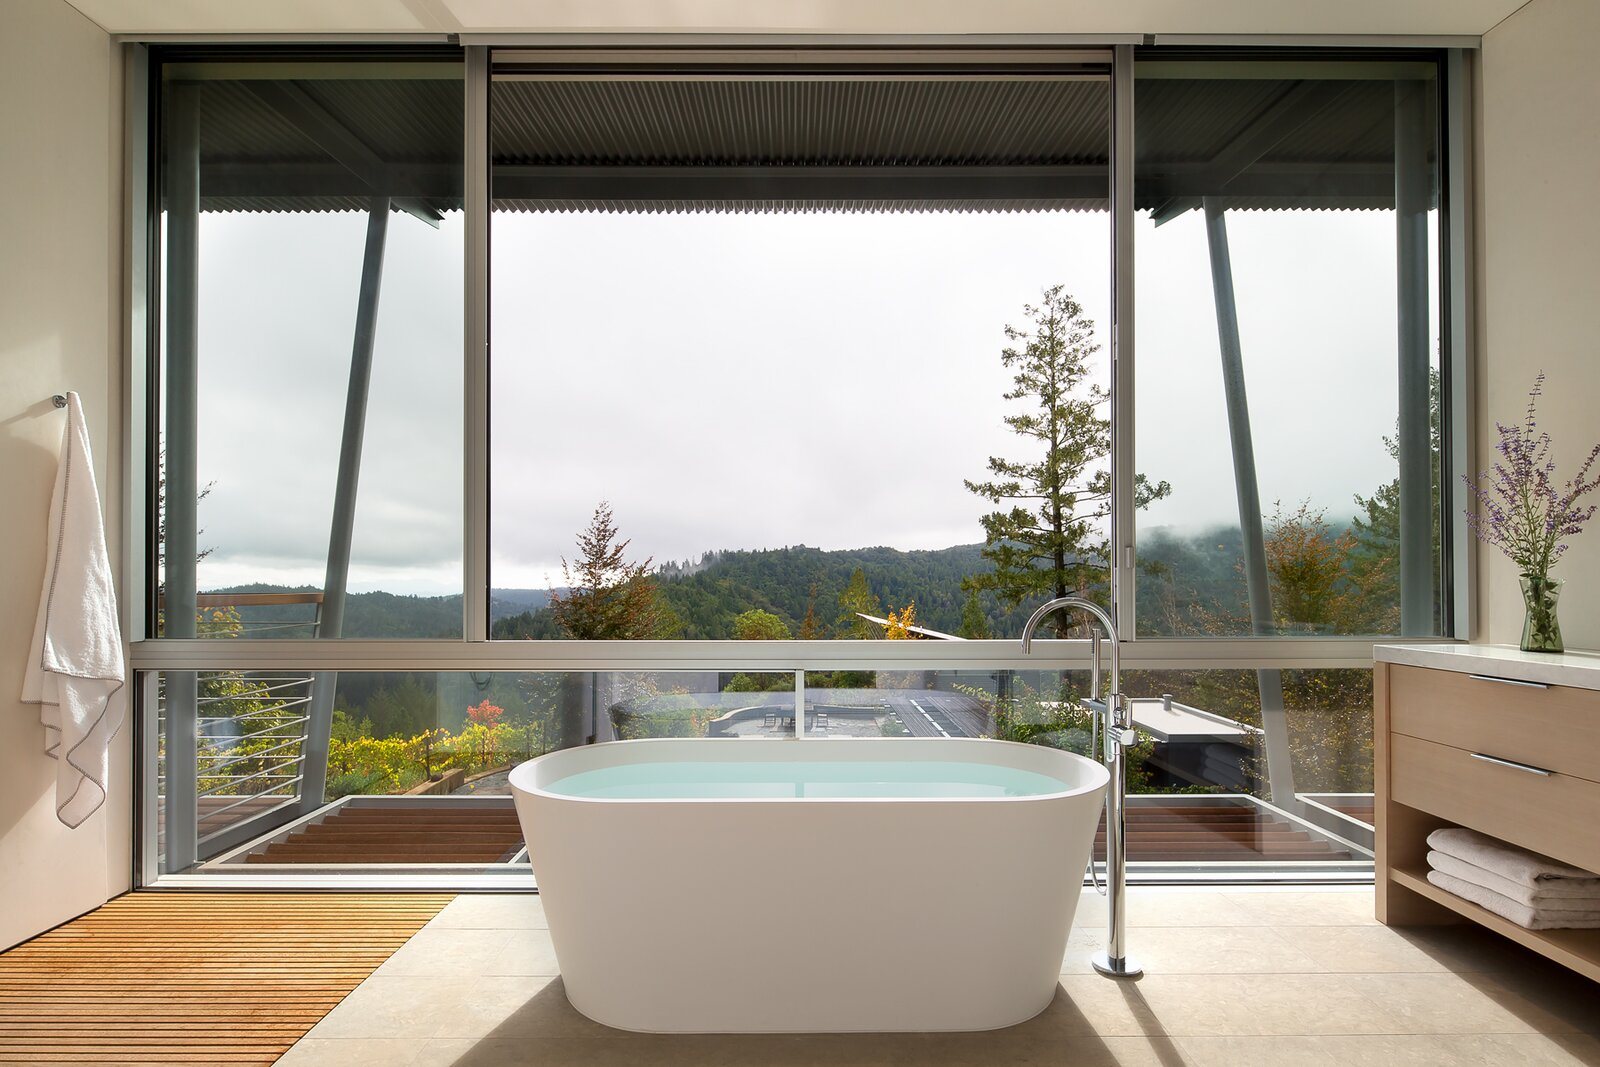 Bath Room and Freestanding Tub  Photo 7 of 11 in A Minimalist House Stands Out in a Wild Landscape from Sunrise